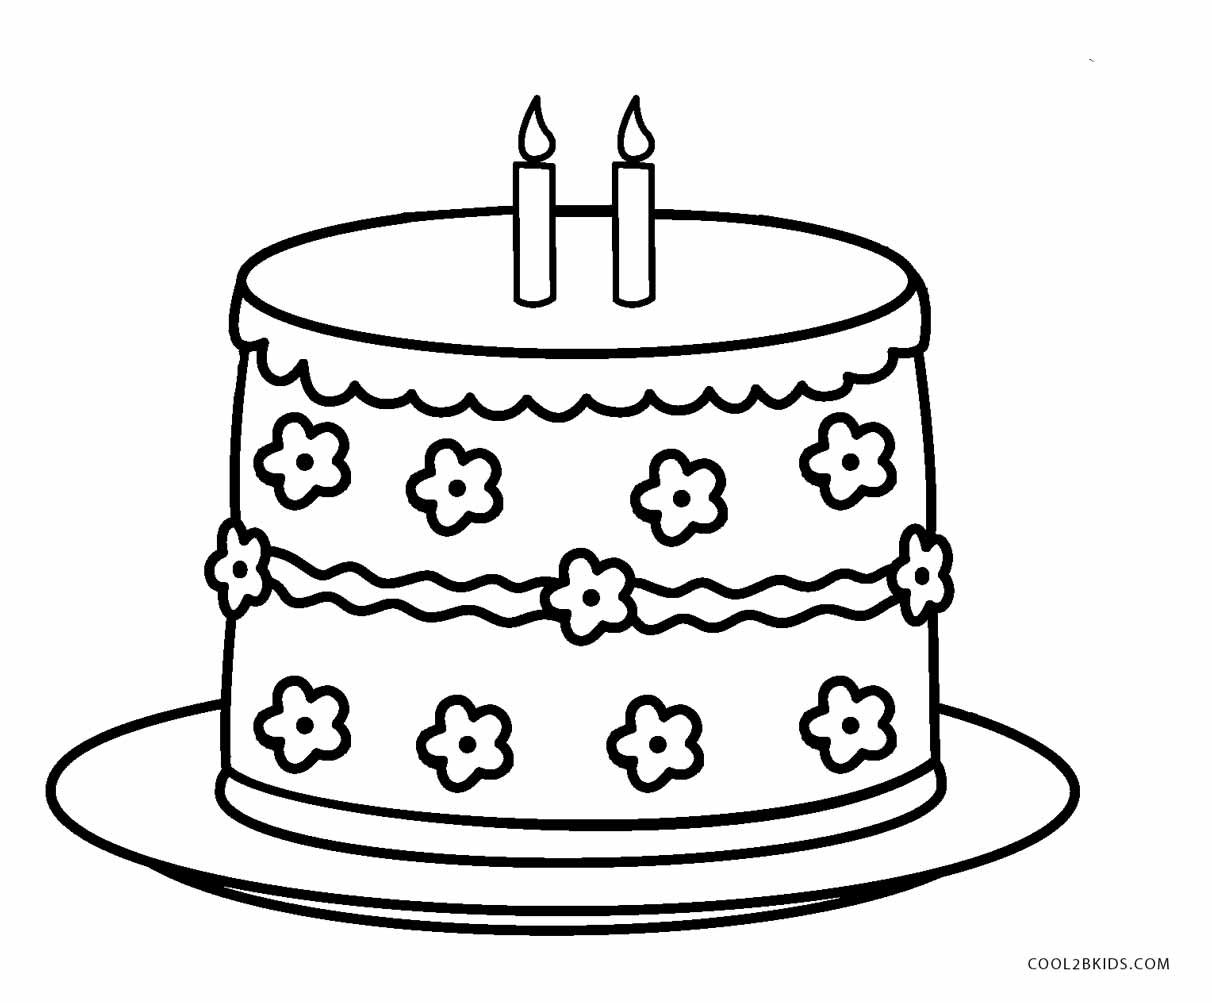 printable birthday cake pictures free printable birthday cake coloring pages for kids cake birthday printable pictures